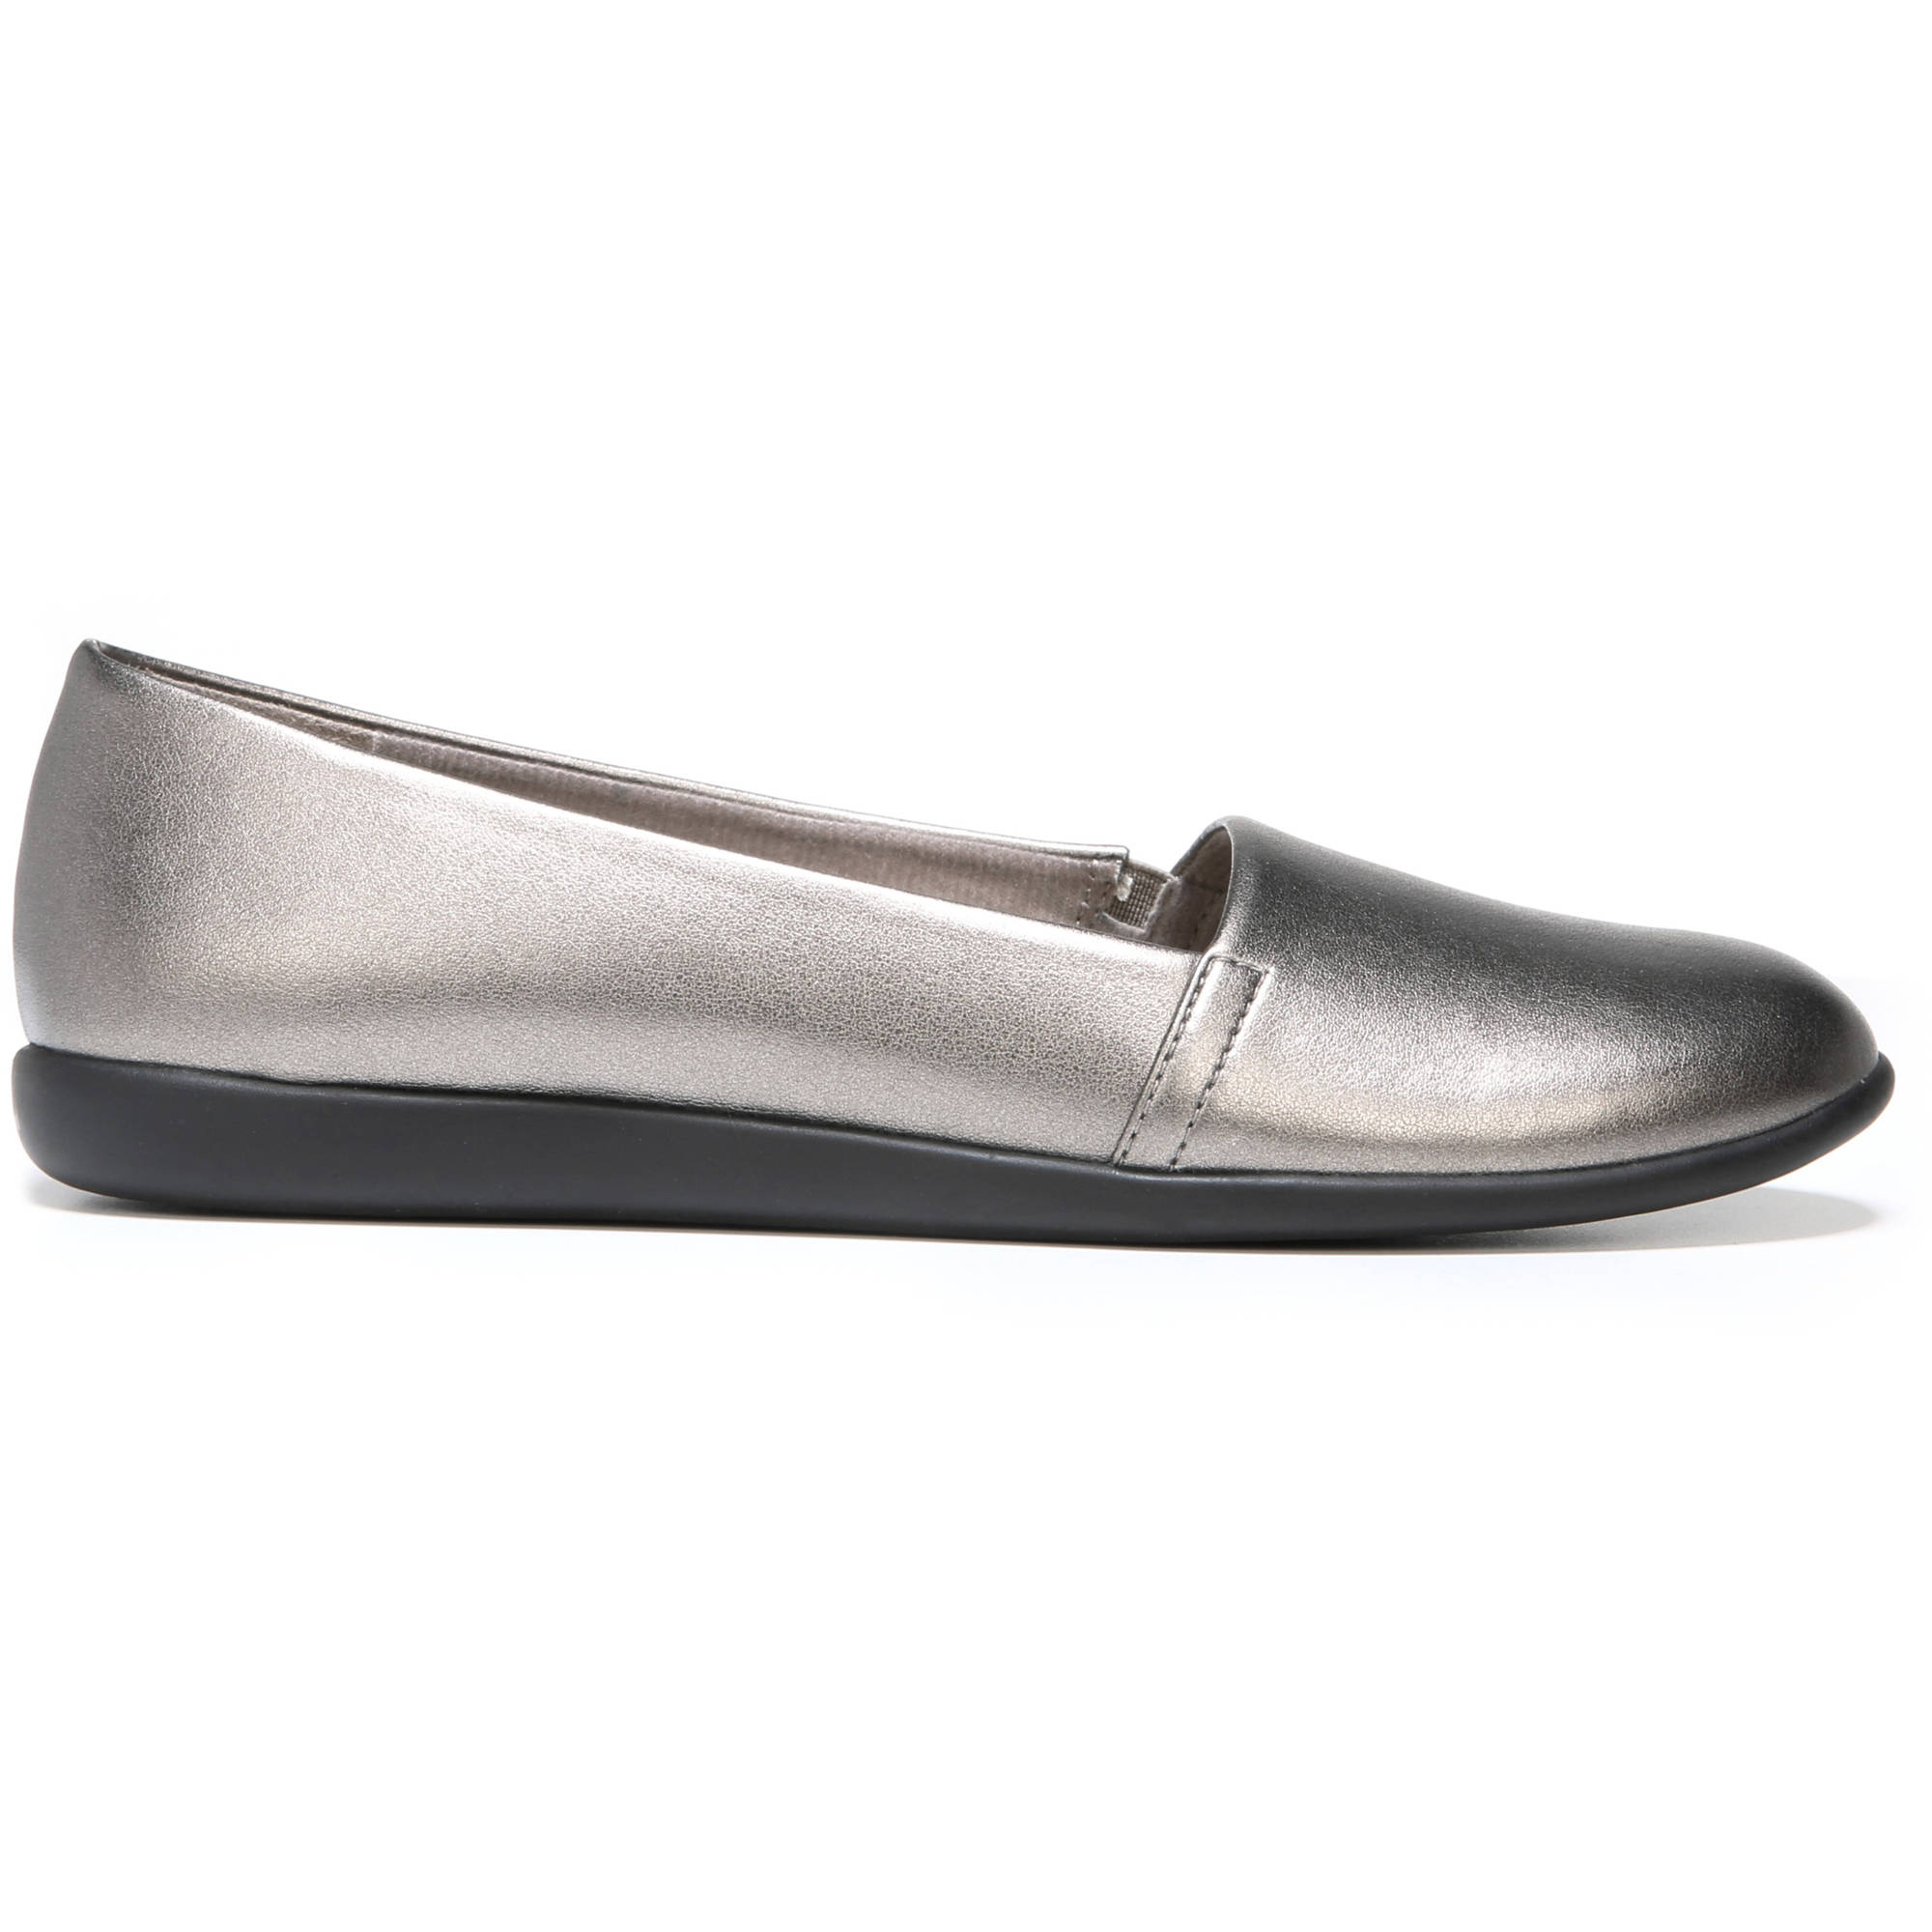 Dr. Scholl's Women's Truly Casual Flat